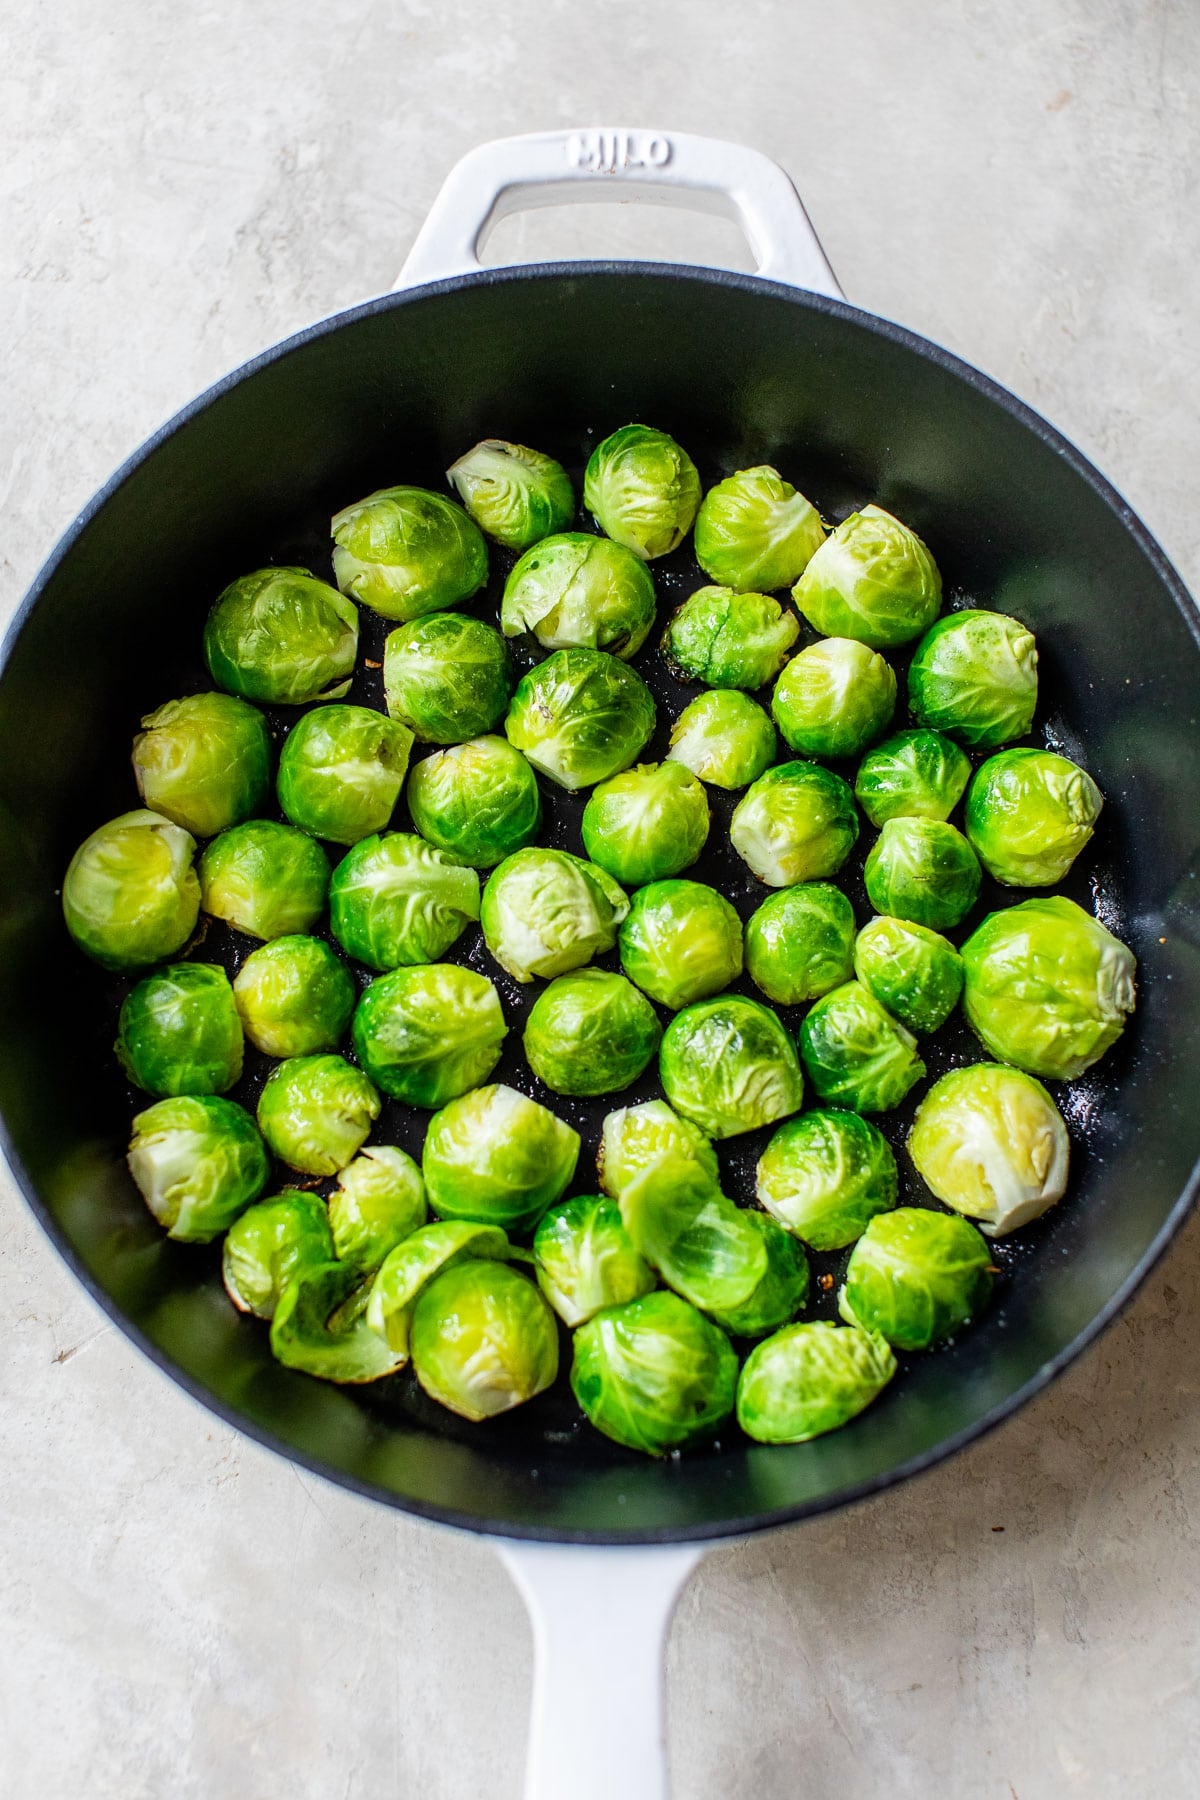 brussels sprouts cut side down in a cast iron skillet